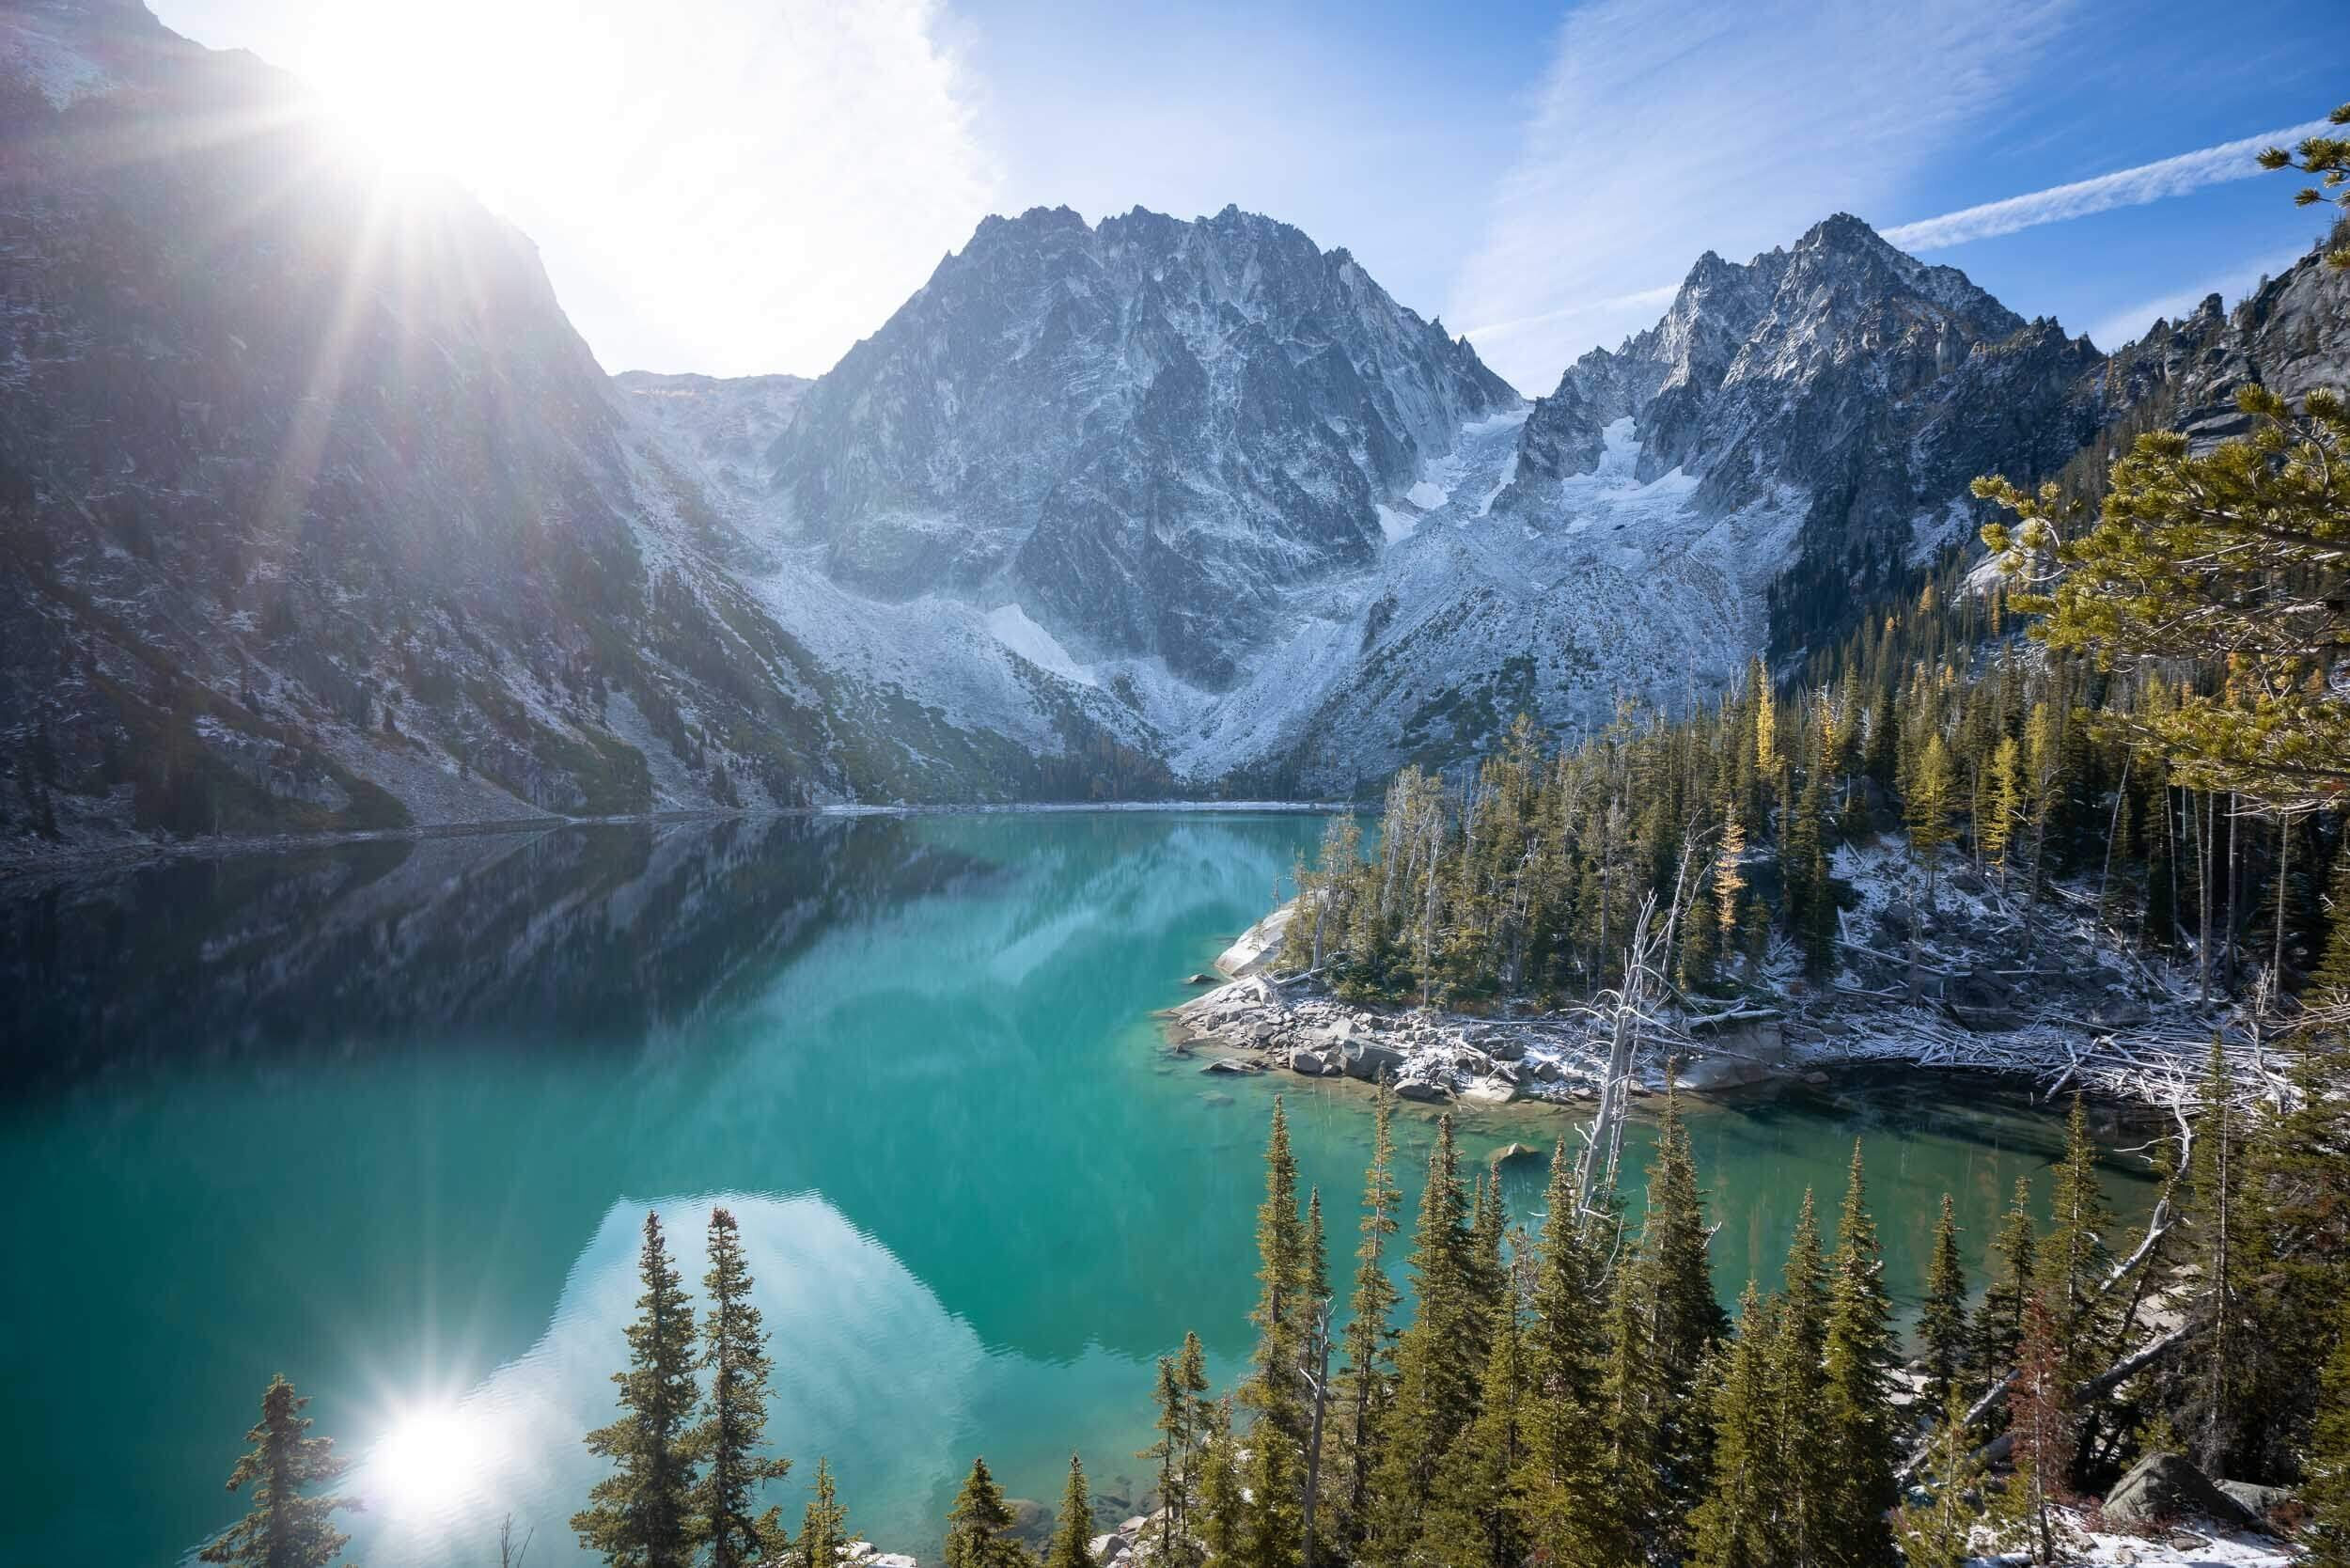 Views of Colchuck Lake. Dragontail Peak is the prominent peek directly across the lake in this image, and Aasgard pass is just to the left of Dragontail Peak.